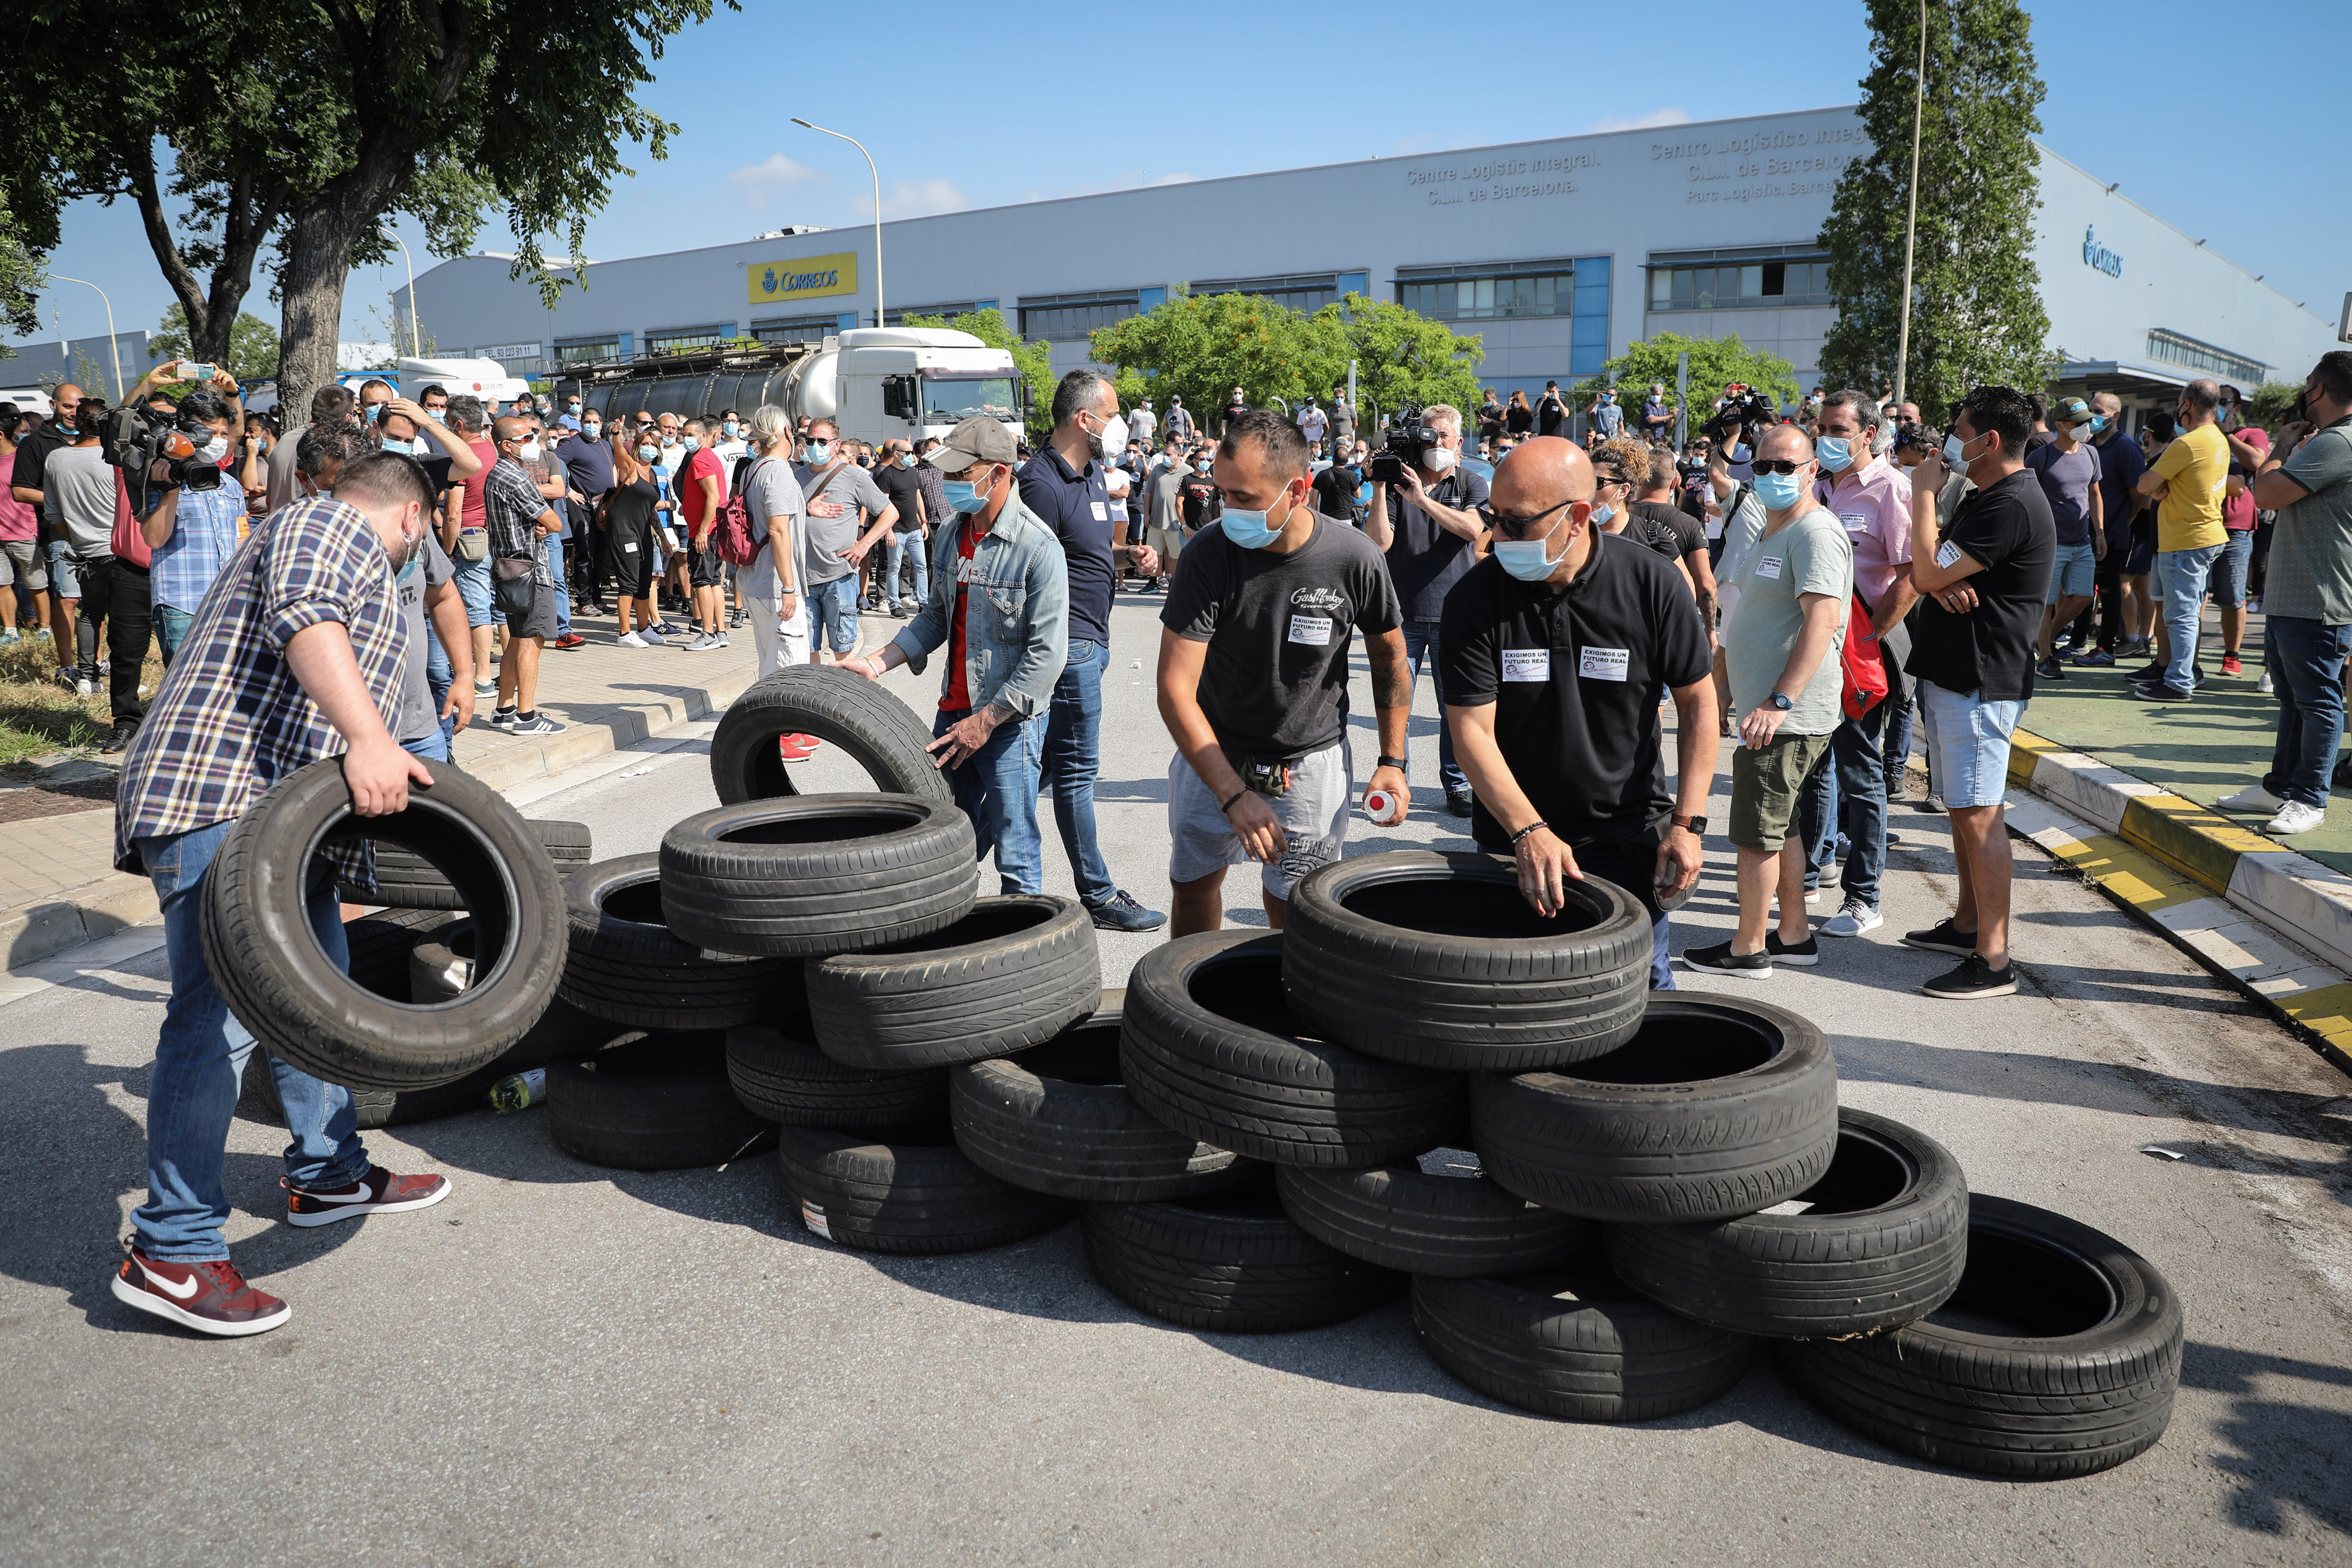 Nissan workers built a blockade with automobile tyres during the demonstration against Barcelona plant closure. A trade union member said that they will continue to fight to seek to reverse the situation caused by the company's decision. (Bloomberg)